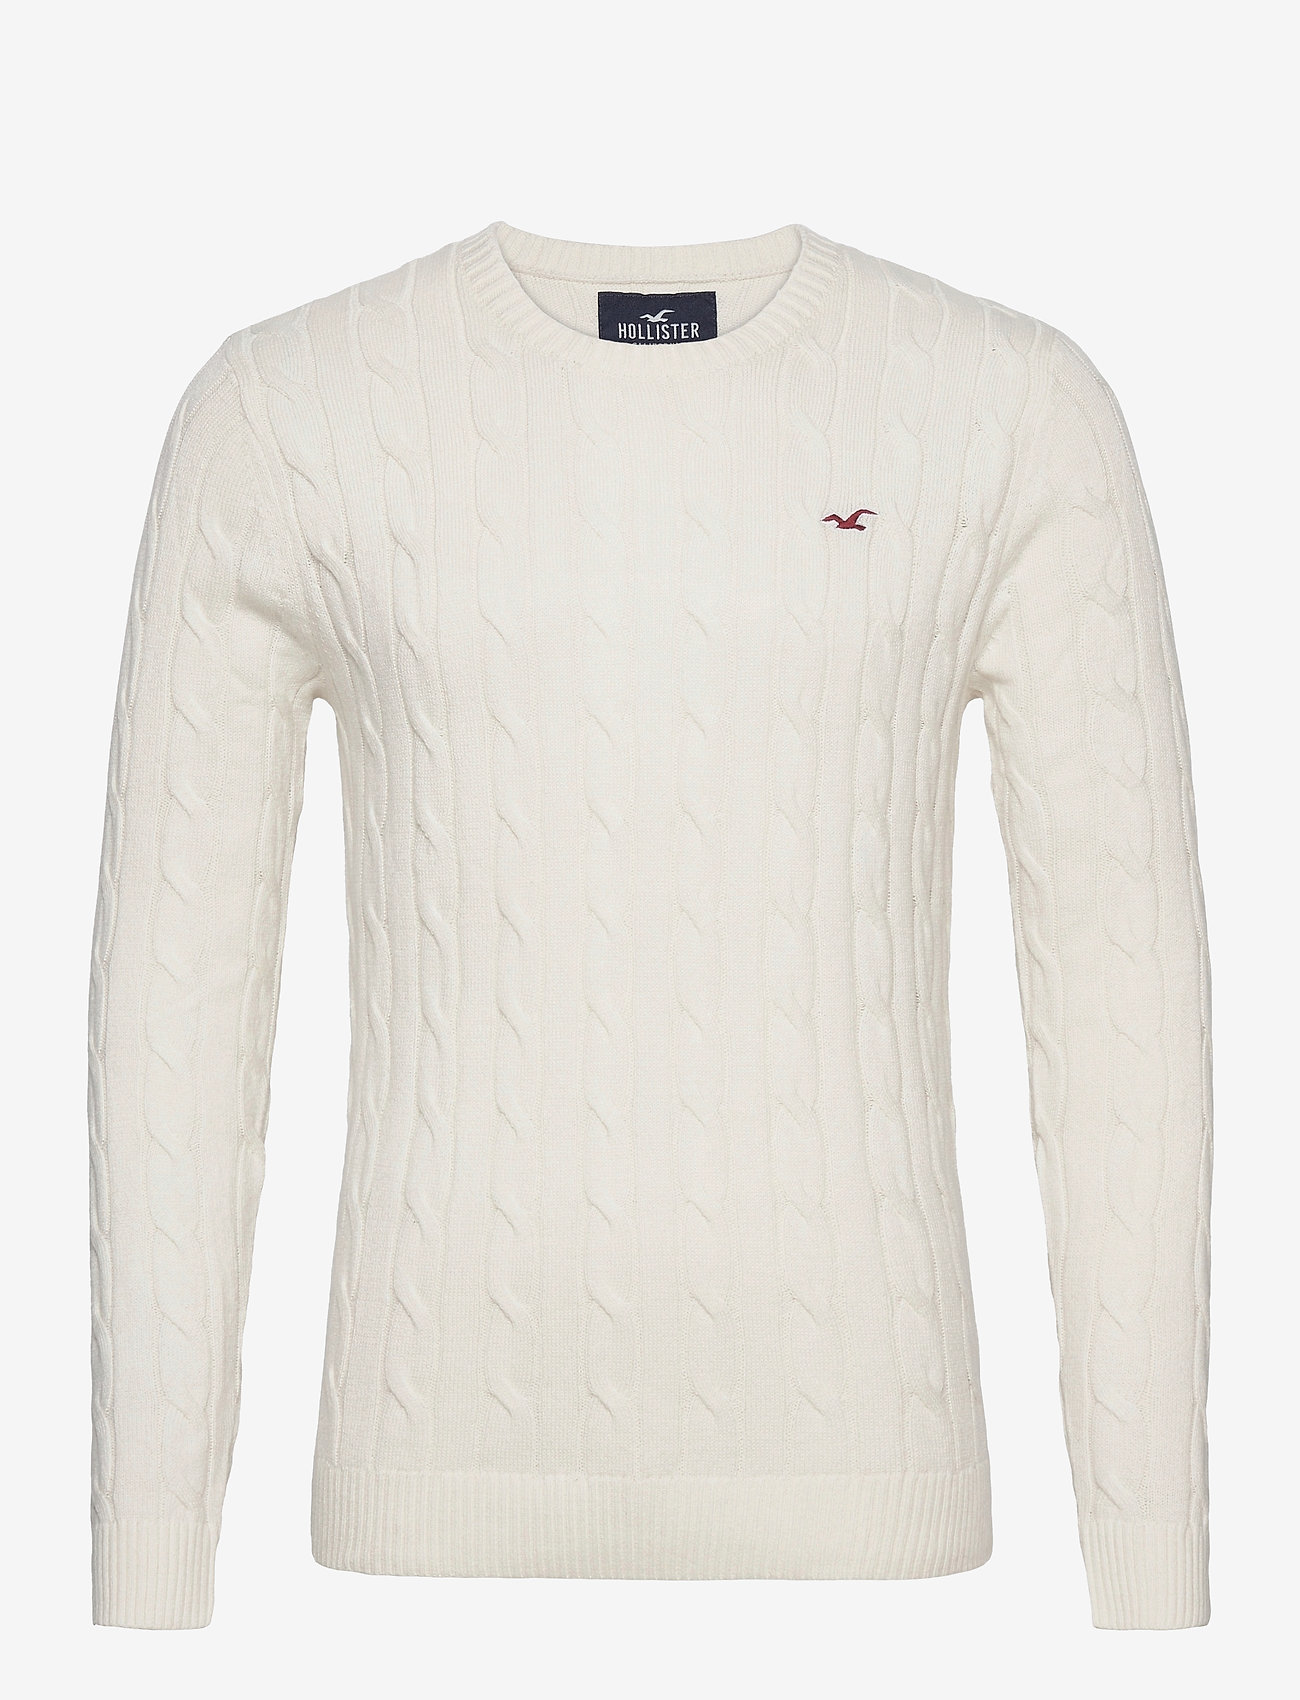 Hollister - HCo. GUYS SWEATERS - tricots basiques - cream - 0